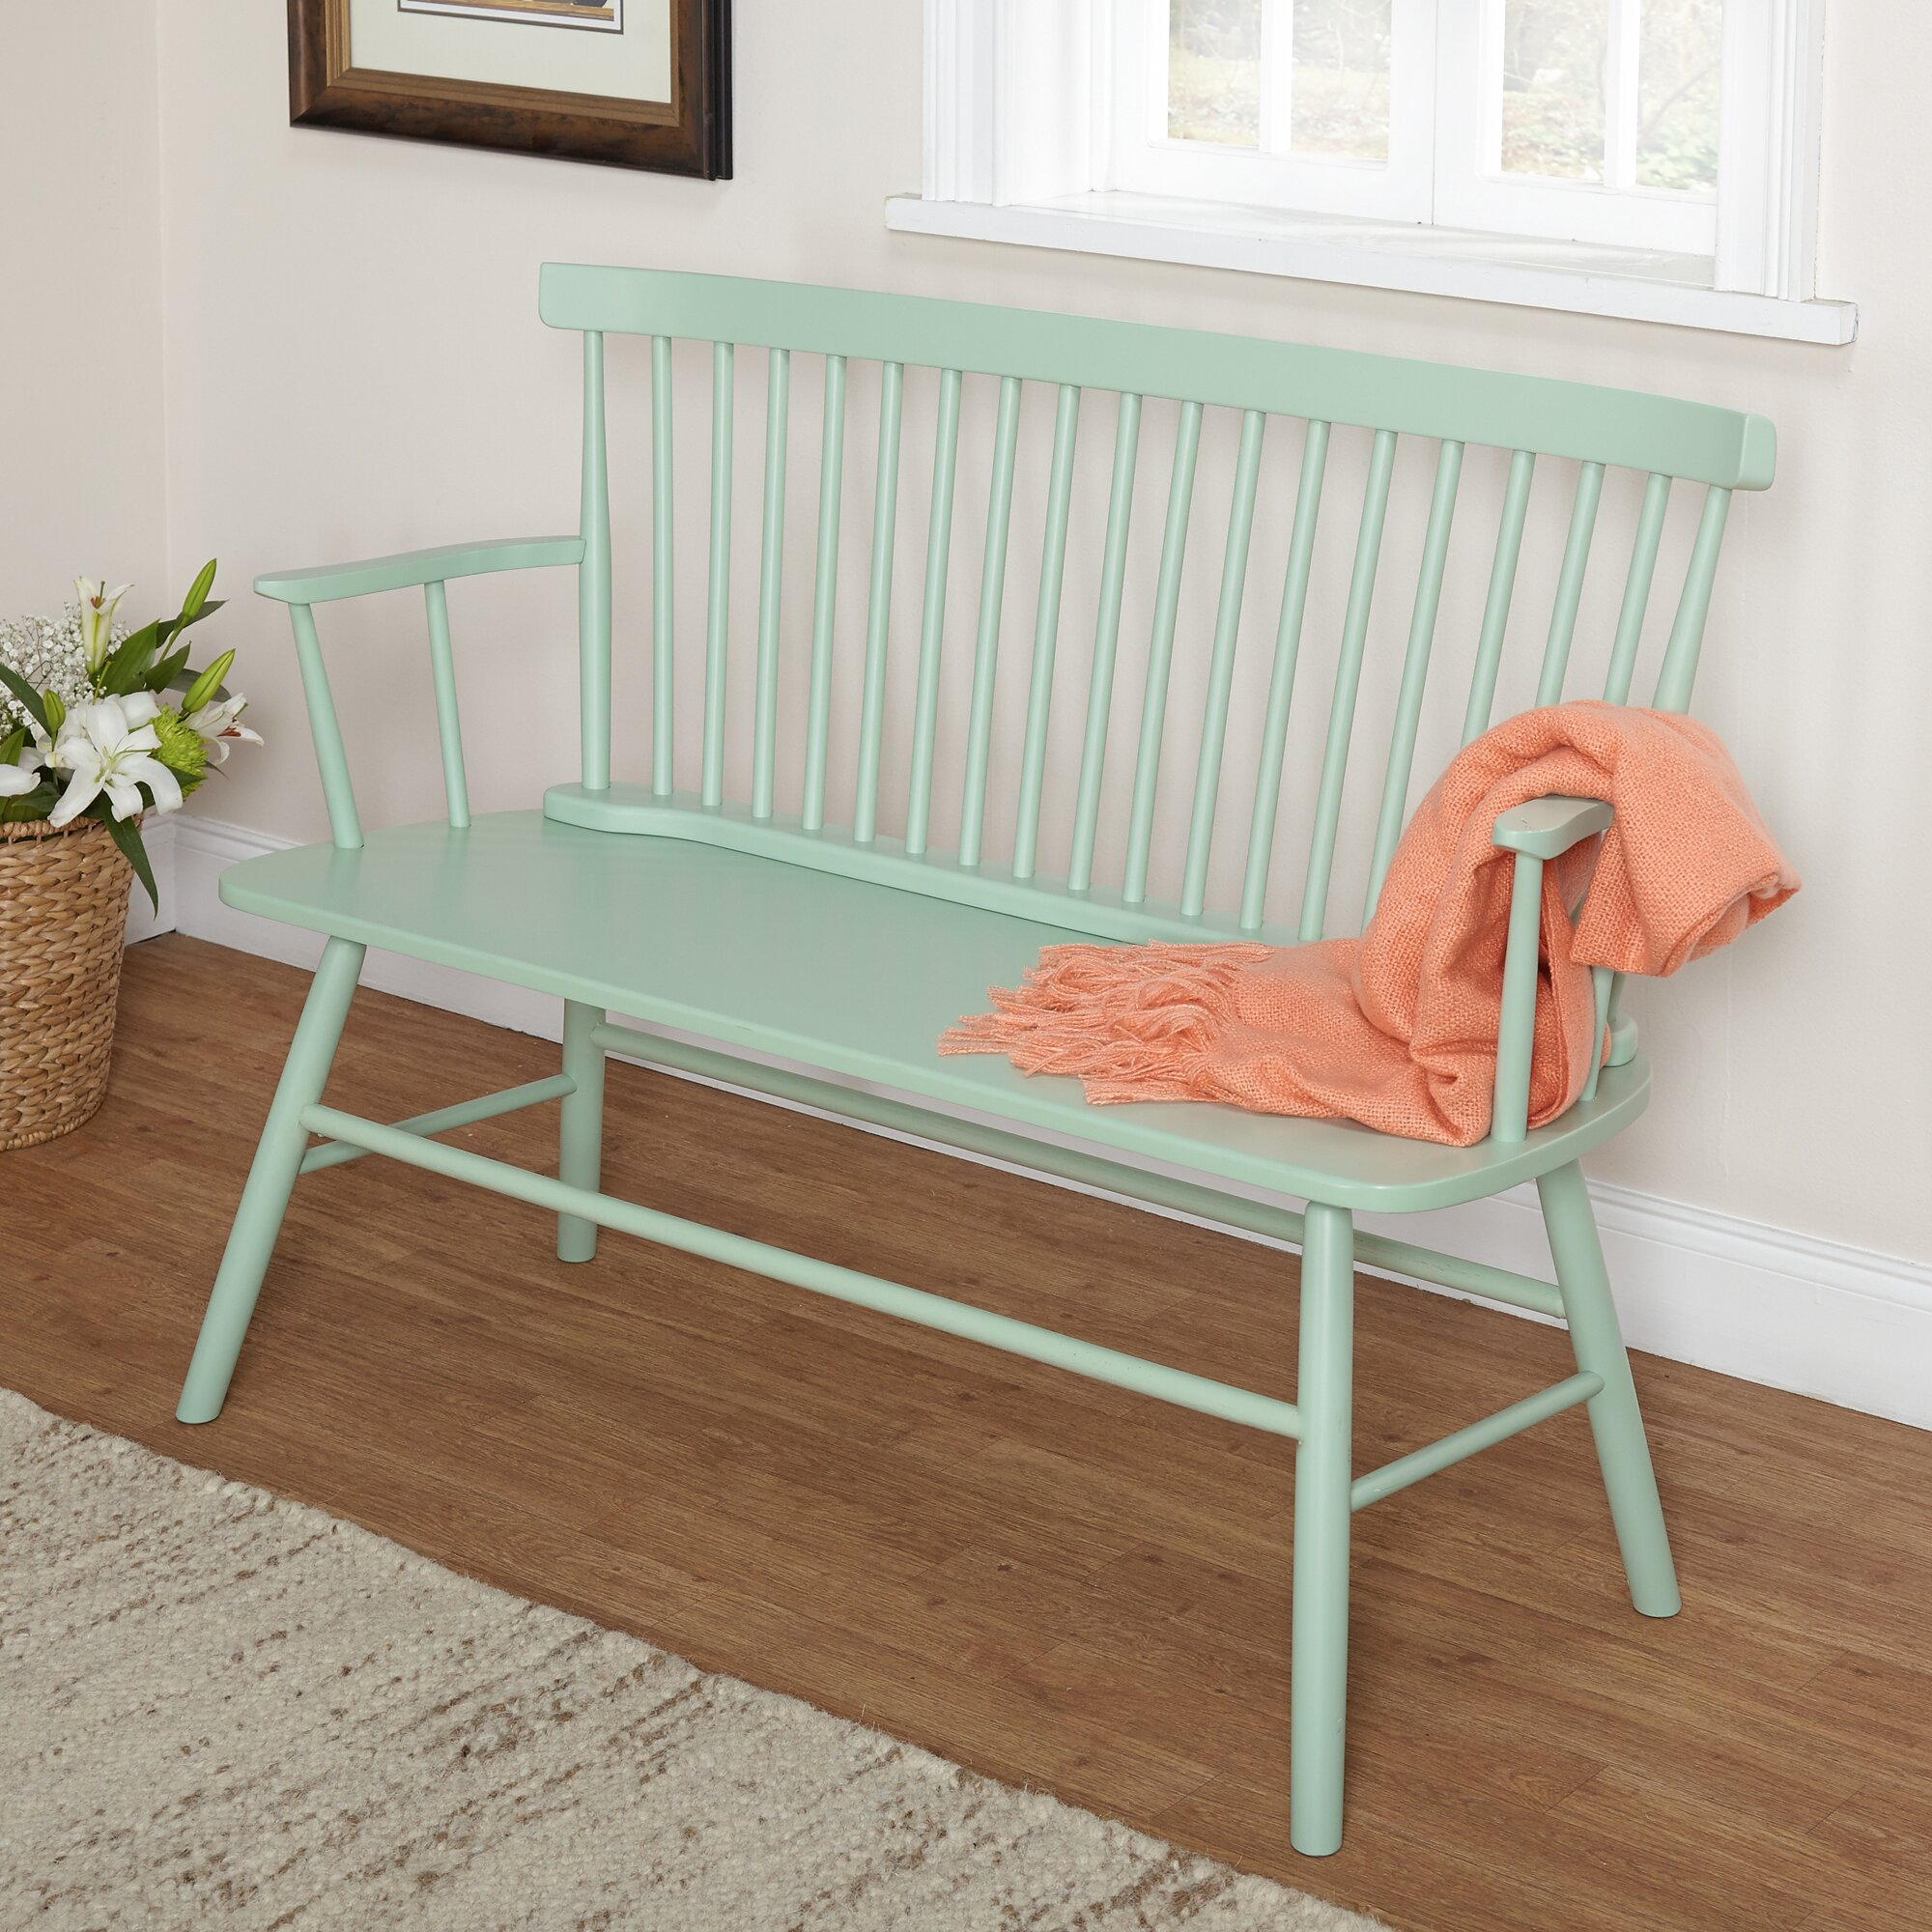 Tms Shelby Rubber Wood Bedroom Bench Amp Reviews Wayfair